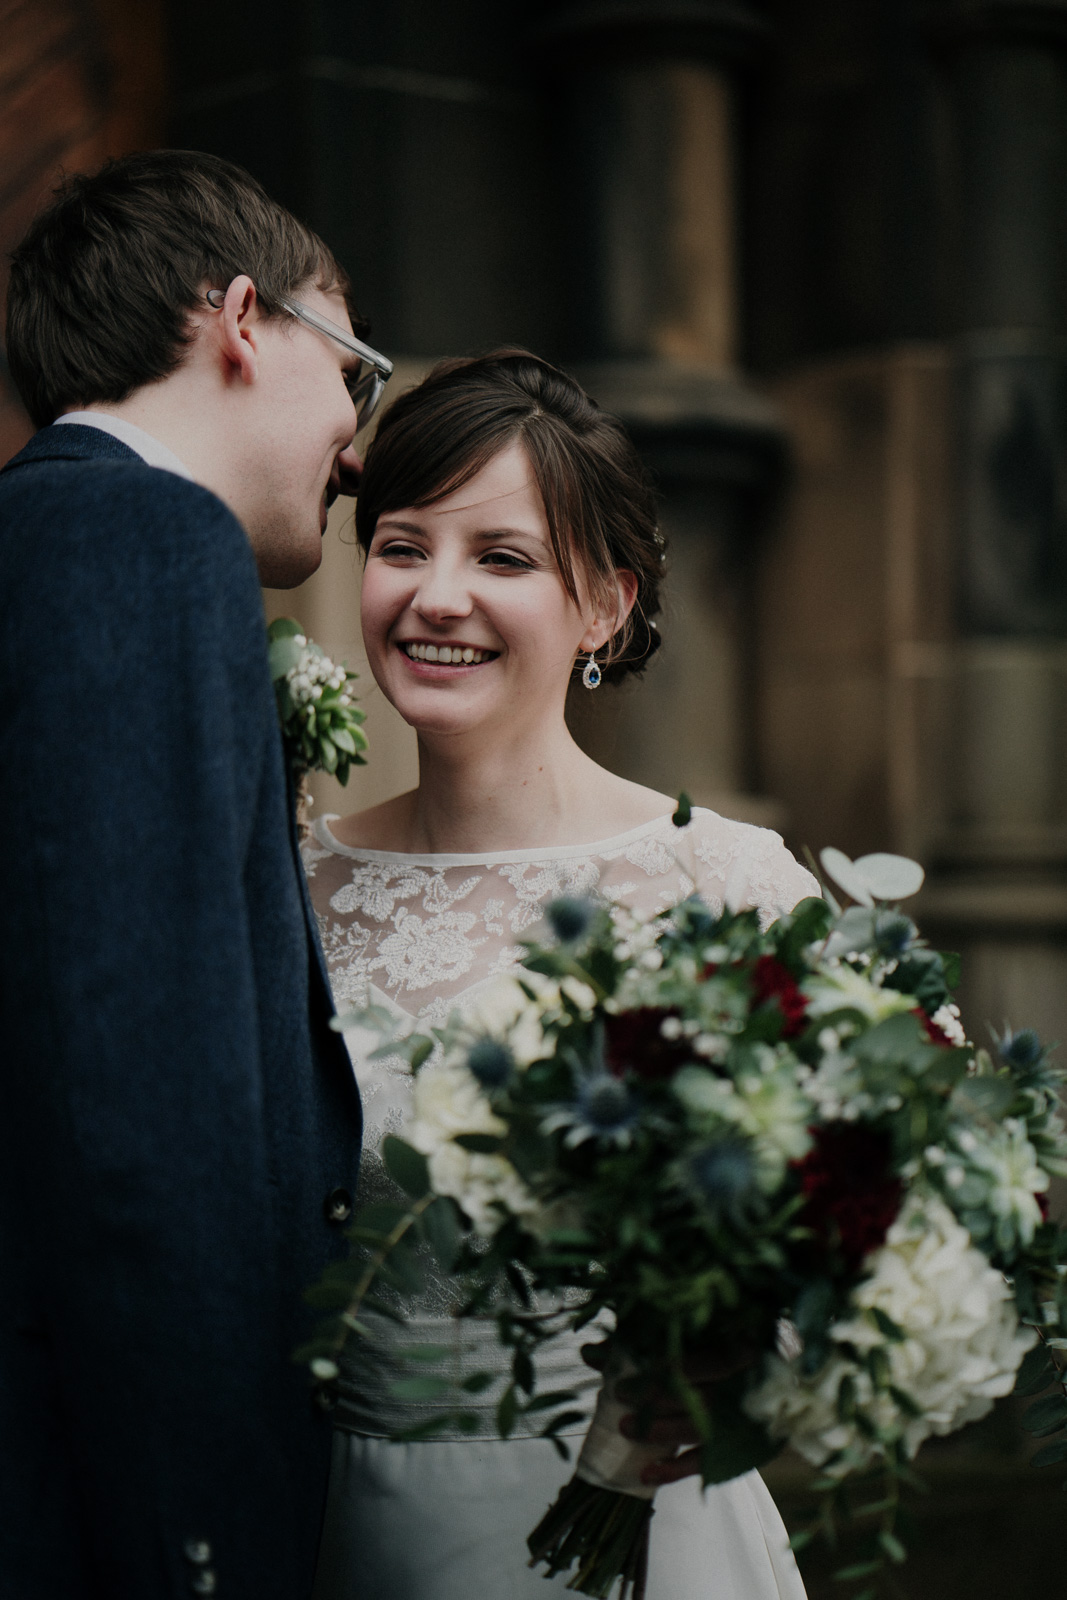 cottiers wedding photographer glasgow